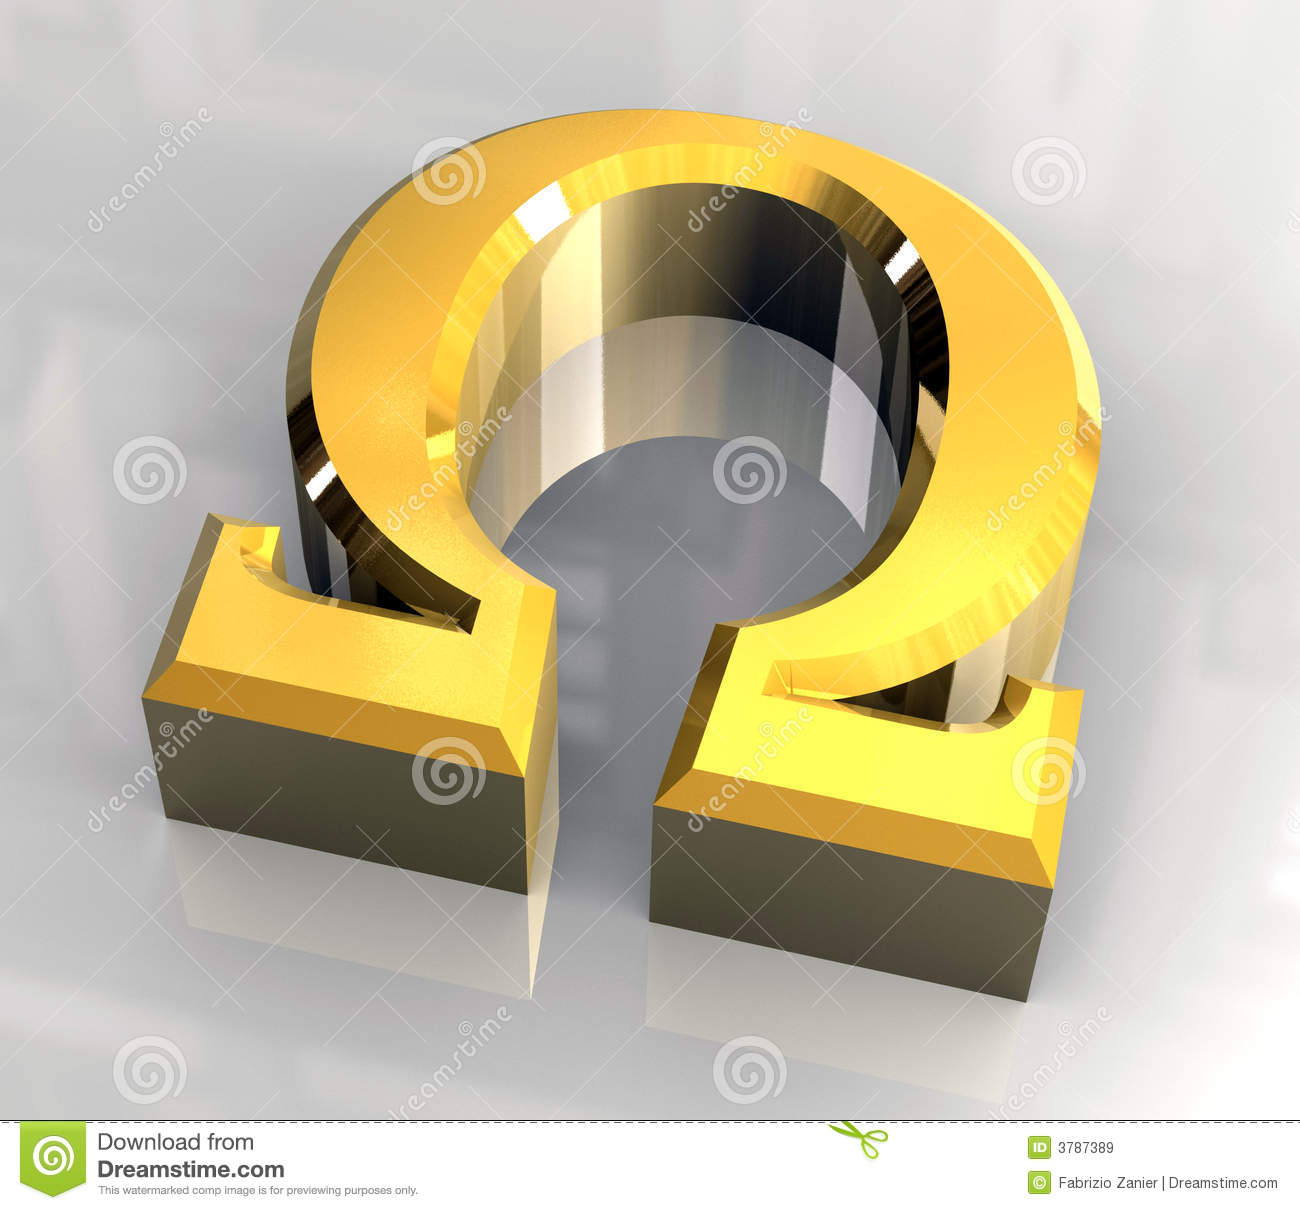 Alpha symbol in gold 3d stock illustration illustration of omega symbol in gold 3d royalty free stock images biocorpaavc Gallery